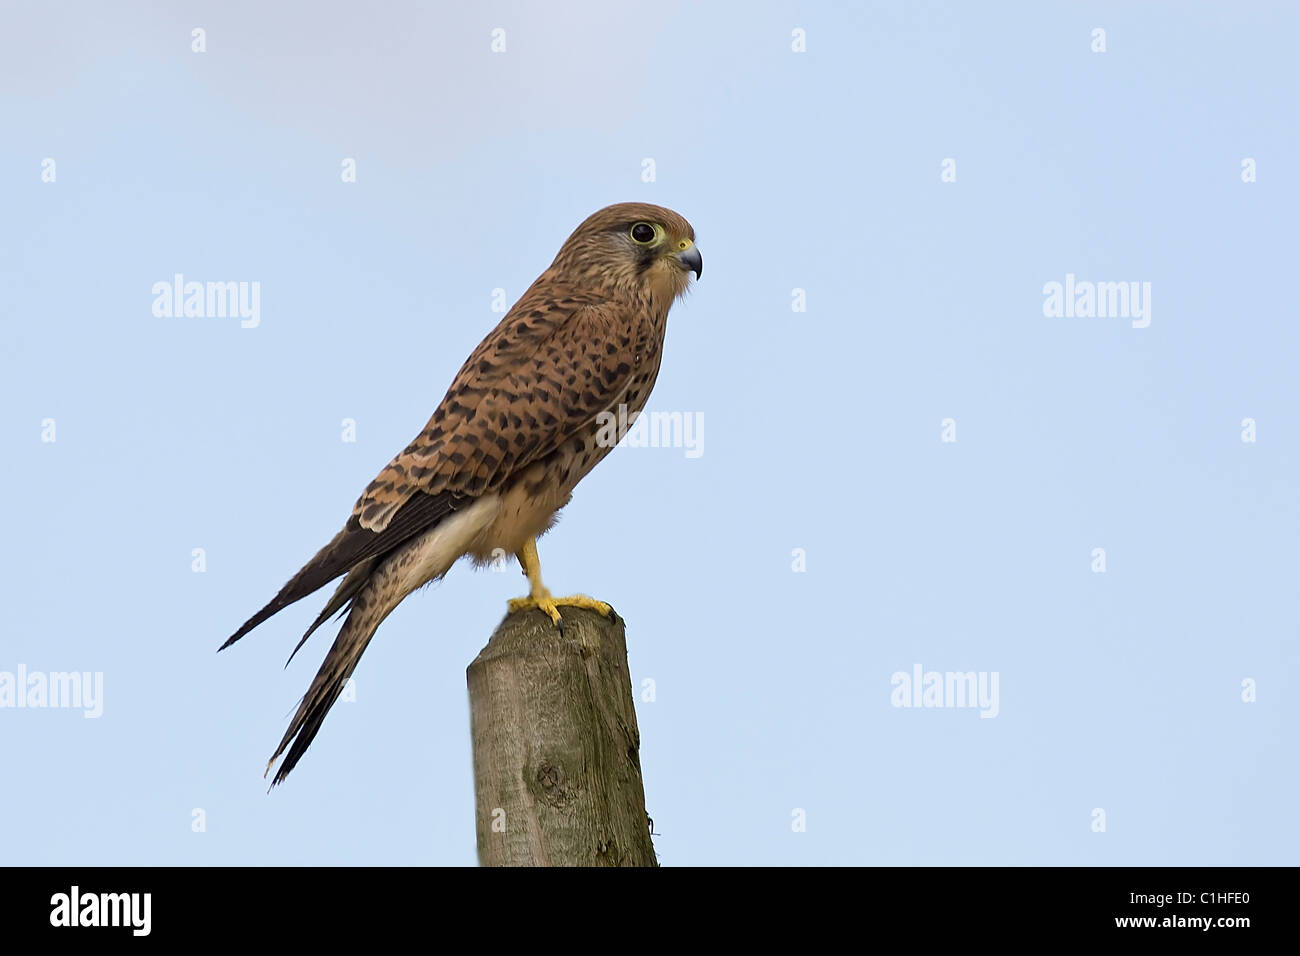 Kestrel female Falco Tinnunculus perched on a wooden stake and taken under controlled conditions against blue sky - Stock Image